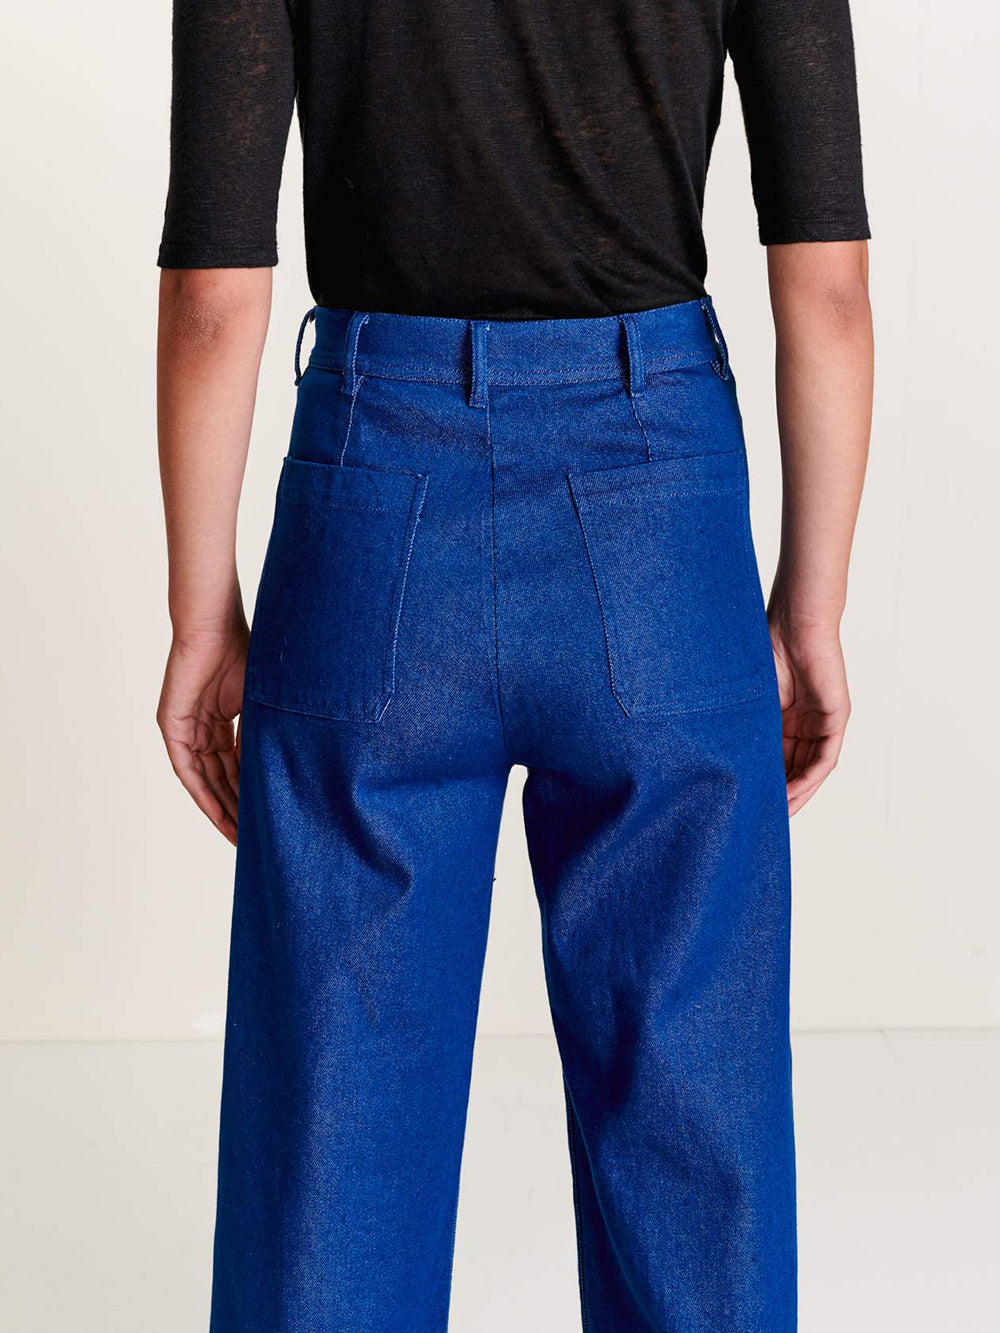 bellerose lotan pant in one wash